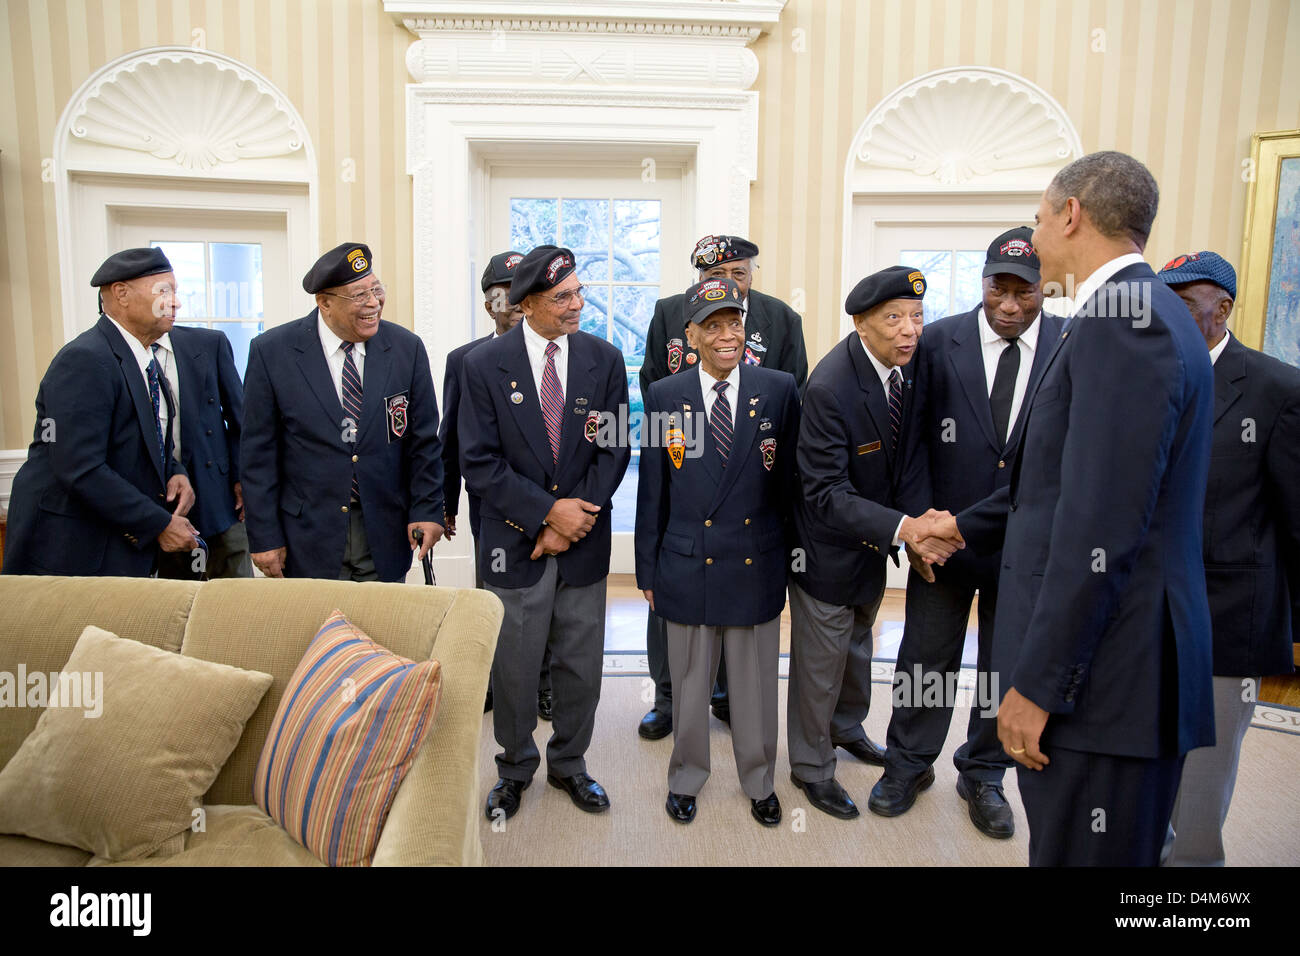 US President Barack Obama greets veterans of the 2nd Airborne Ranger Infantry Company in the Oval Office of the - Stock Image